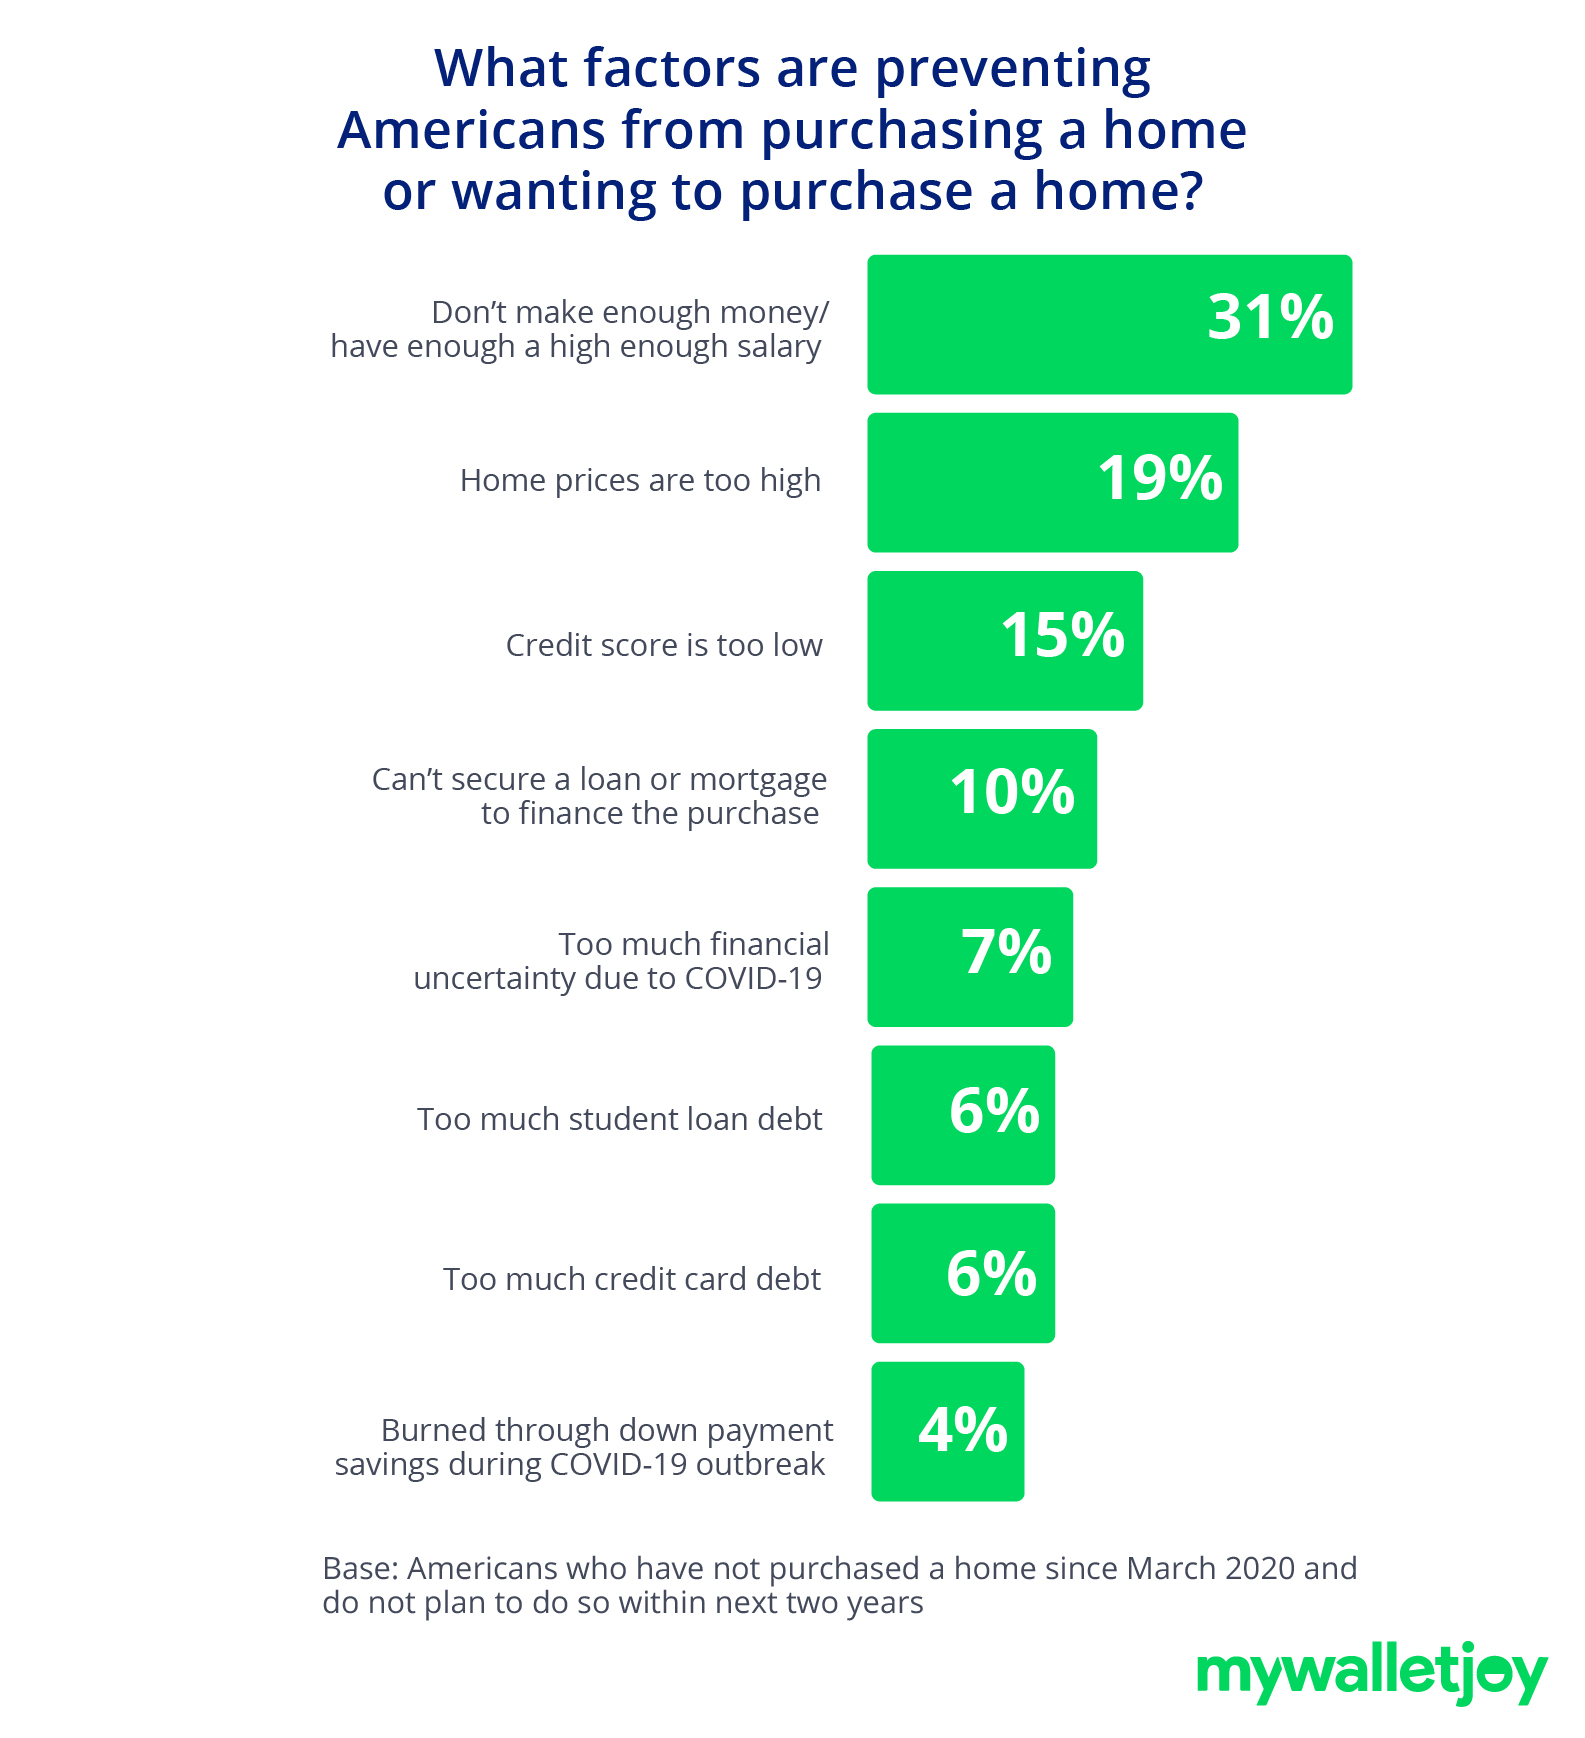 bar chart depicting the factors preventing americans from buying a home or wanting to purchase a home